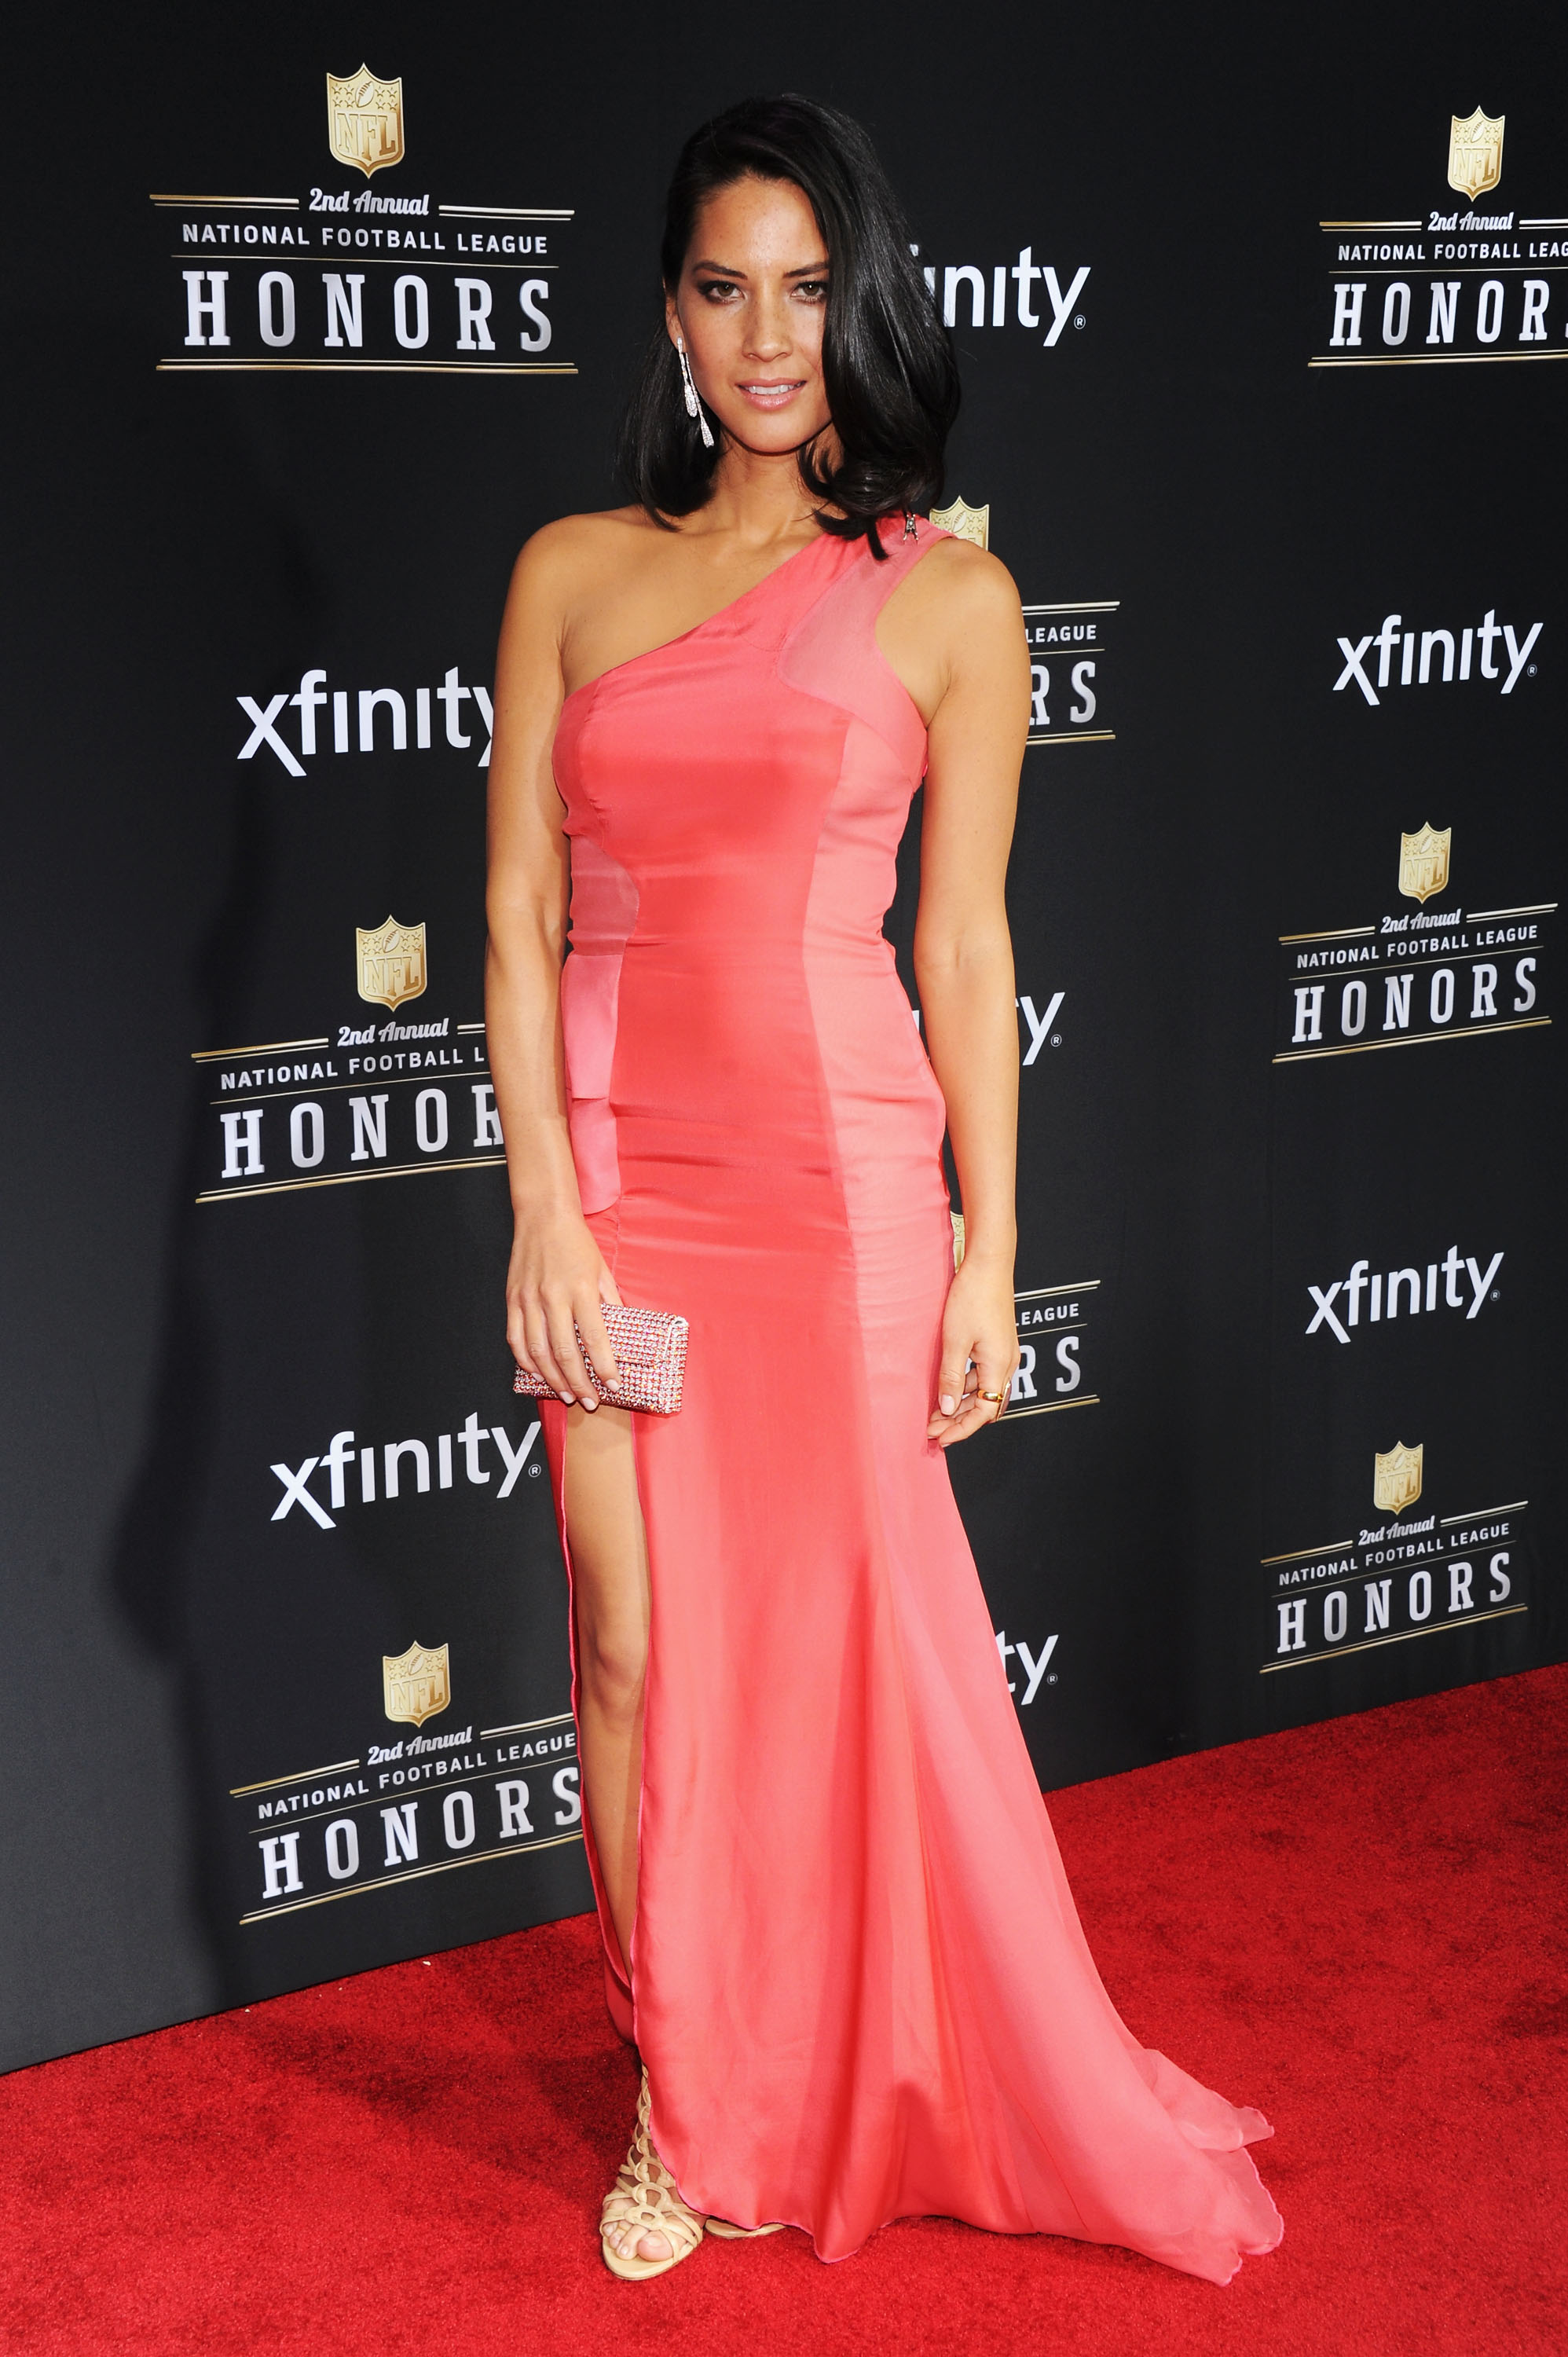 For the NFL Honors award show, Olivia stepped out in a bright — albeit glamorous — coral-hued one-shoulder gown by Izmaylova, complete with a sexy thigh-high split, then finished off the floor-length look with strappy nude heels.